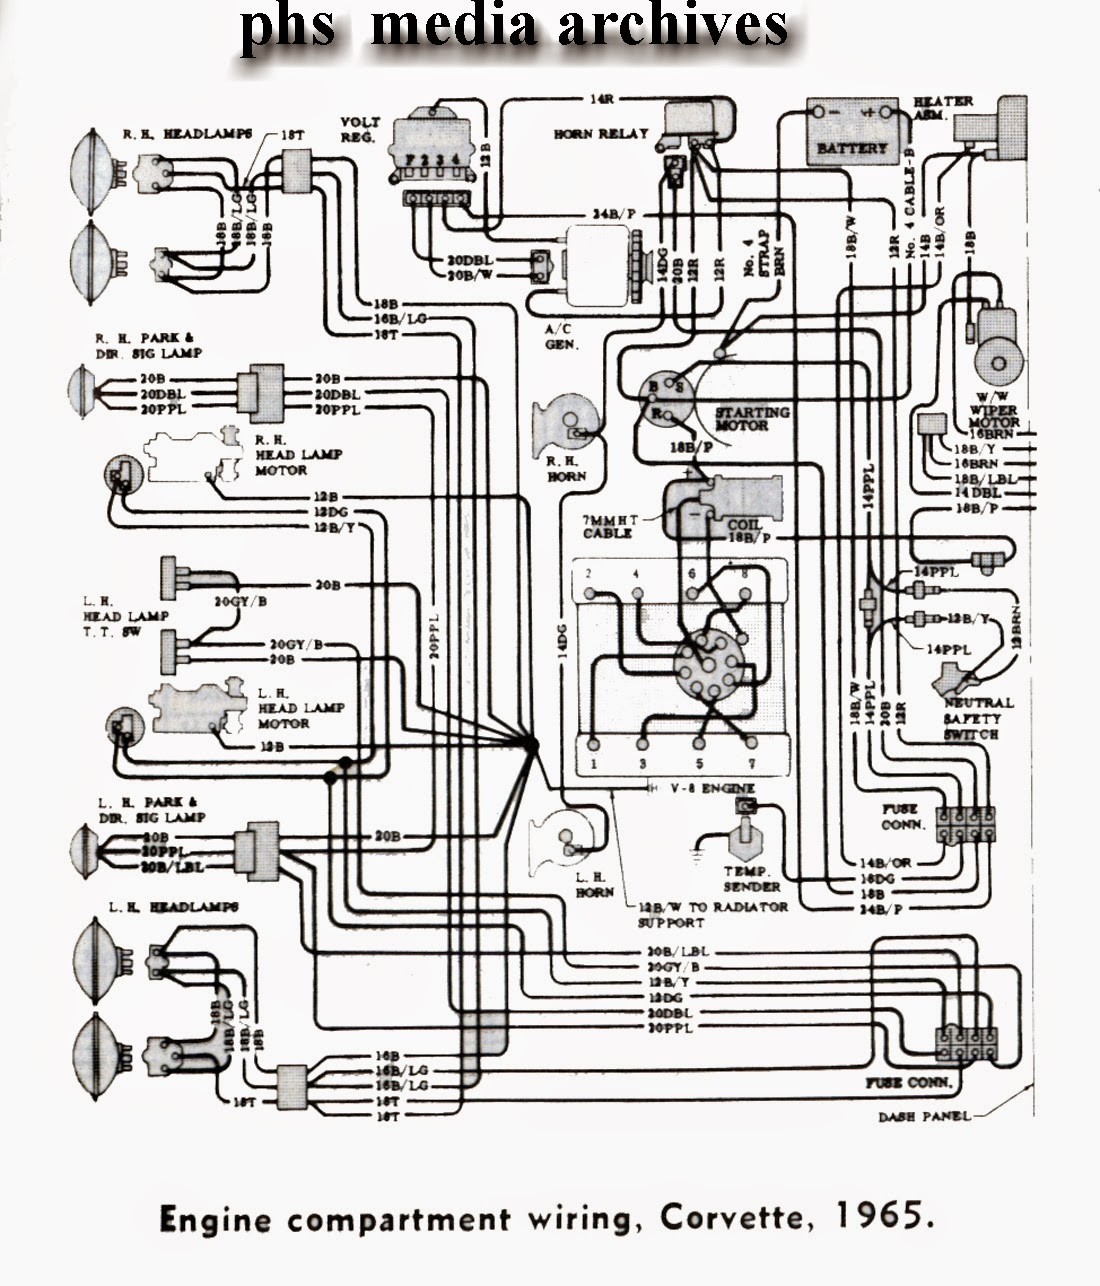 hight resolution of 1967 pontiac fuse box diagram wiring schematic all wiring diagramwrg 6242 1967 pontiac fuse box